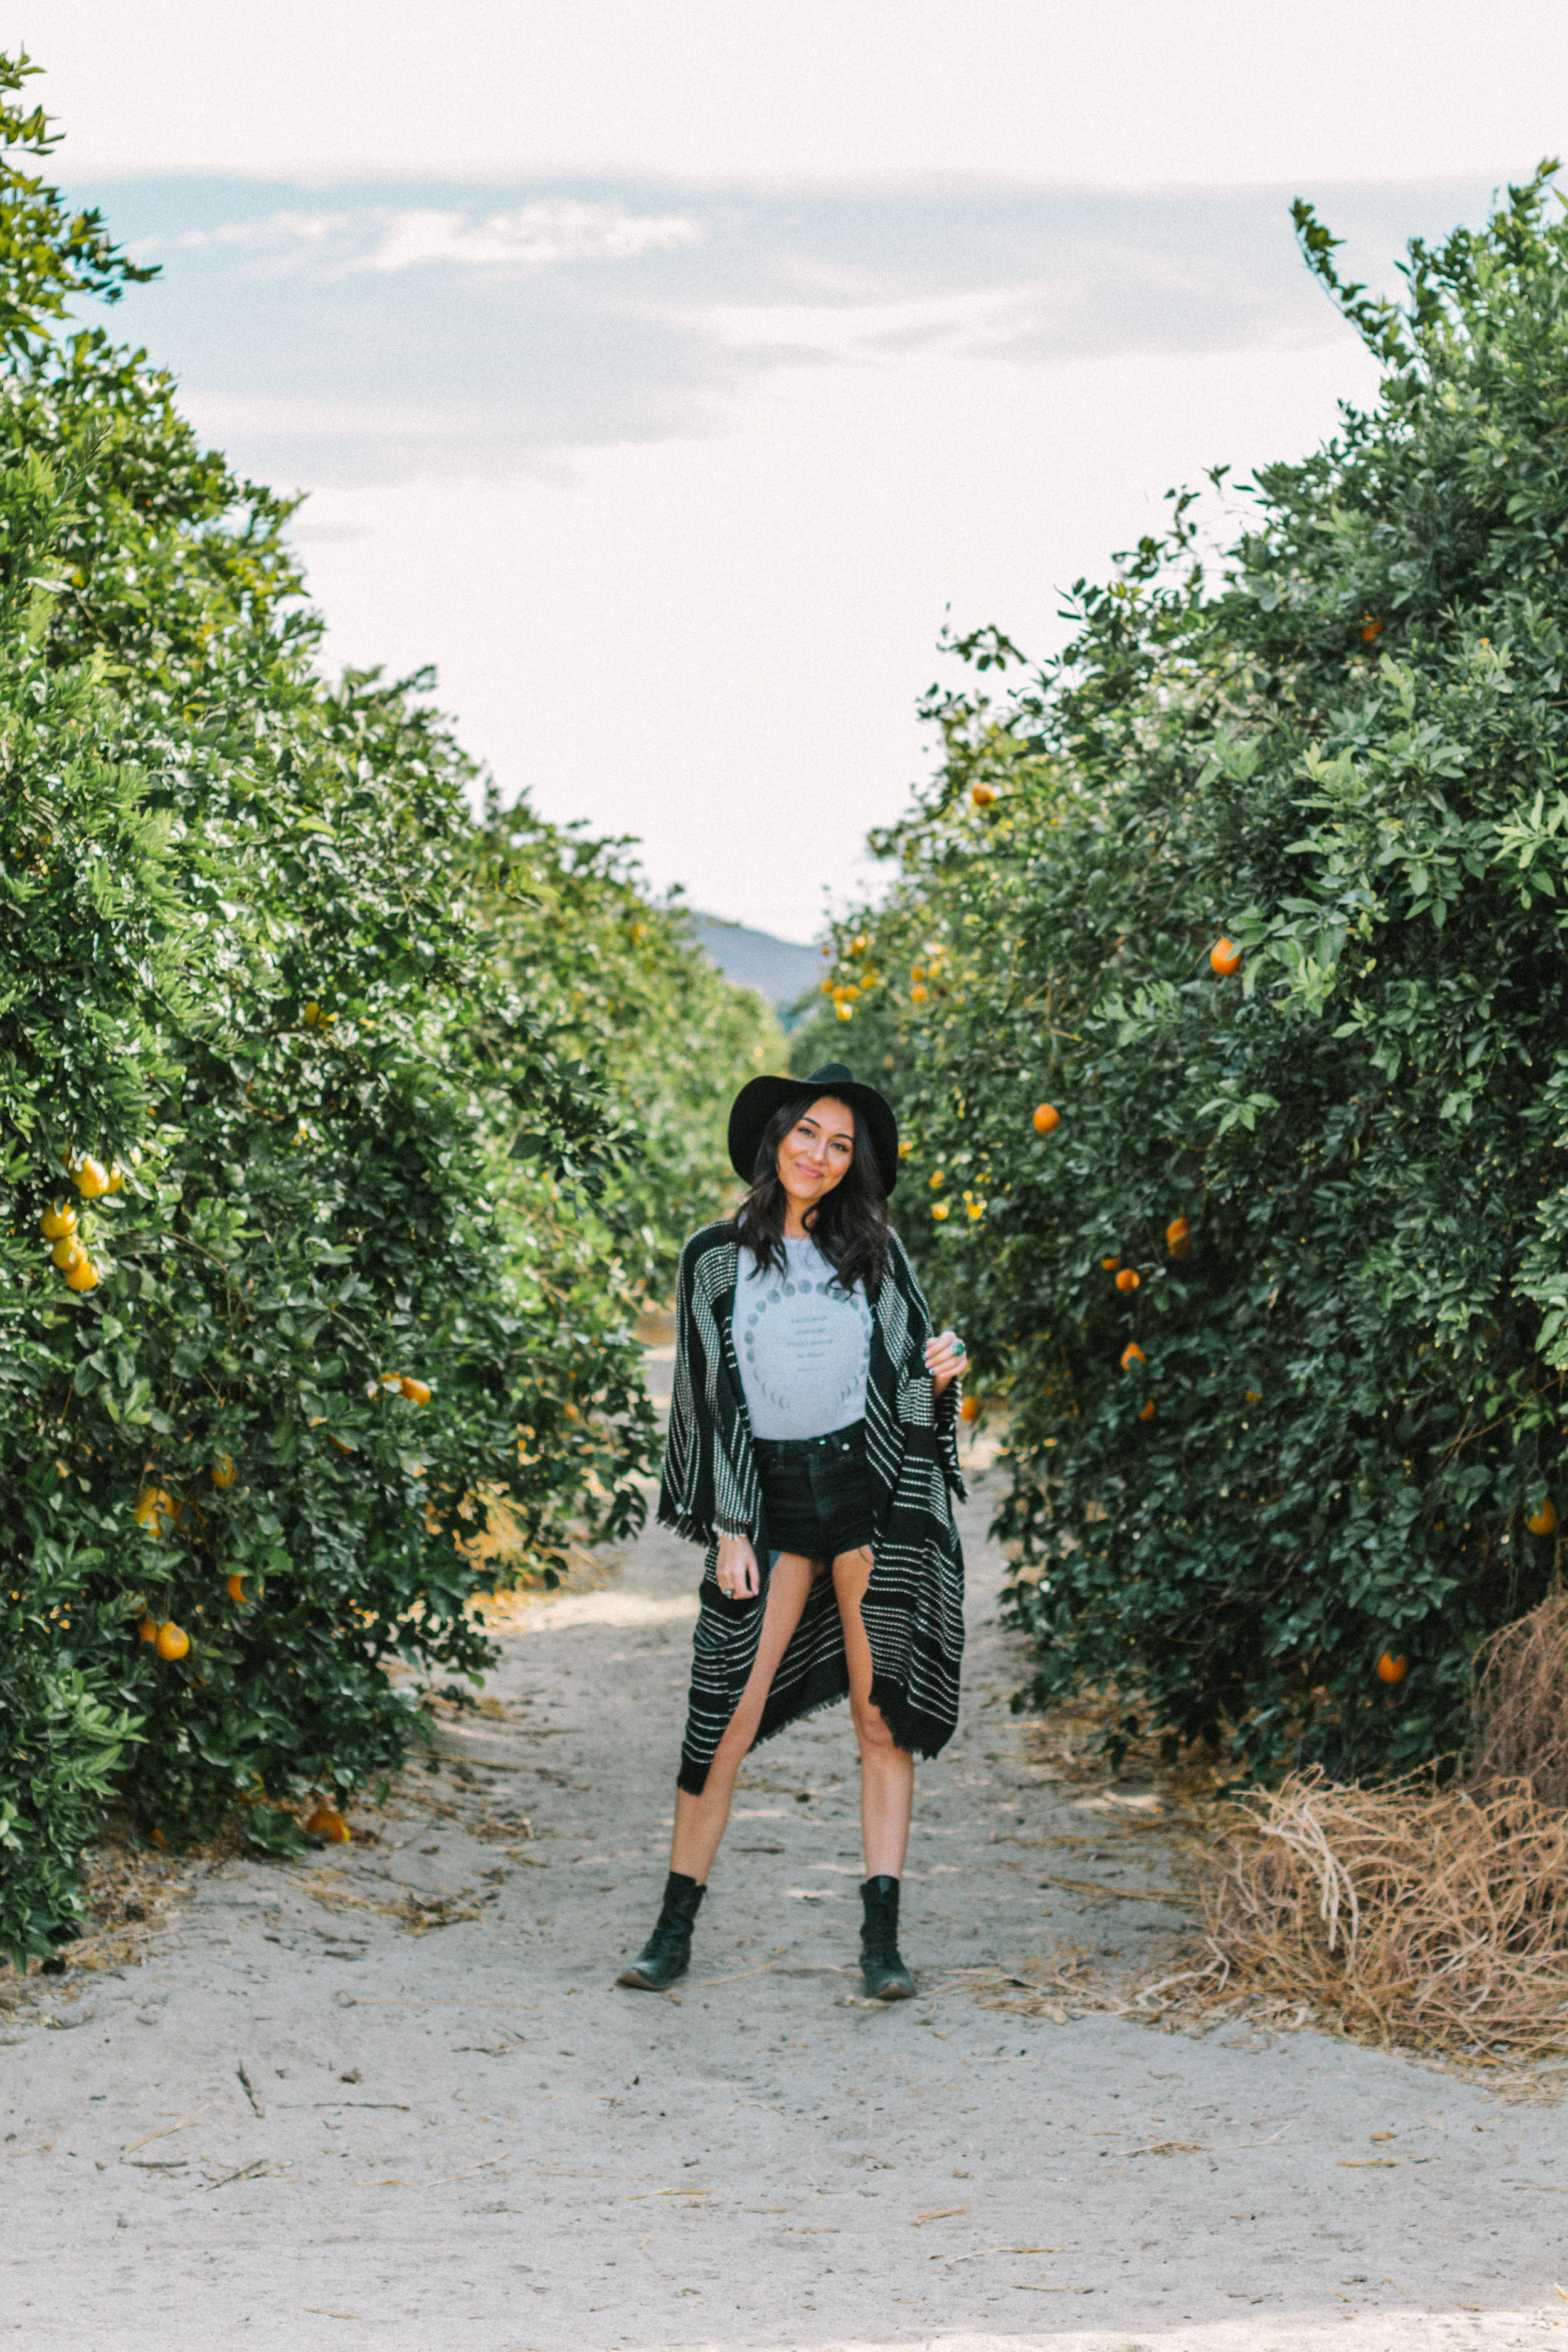 borrego springs orange orchard 4